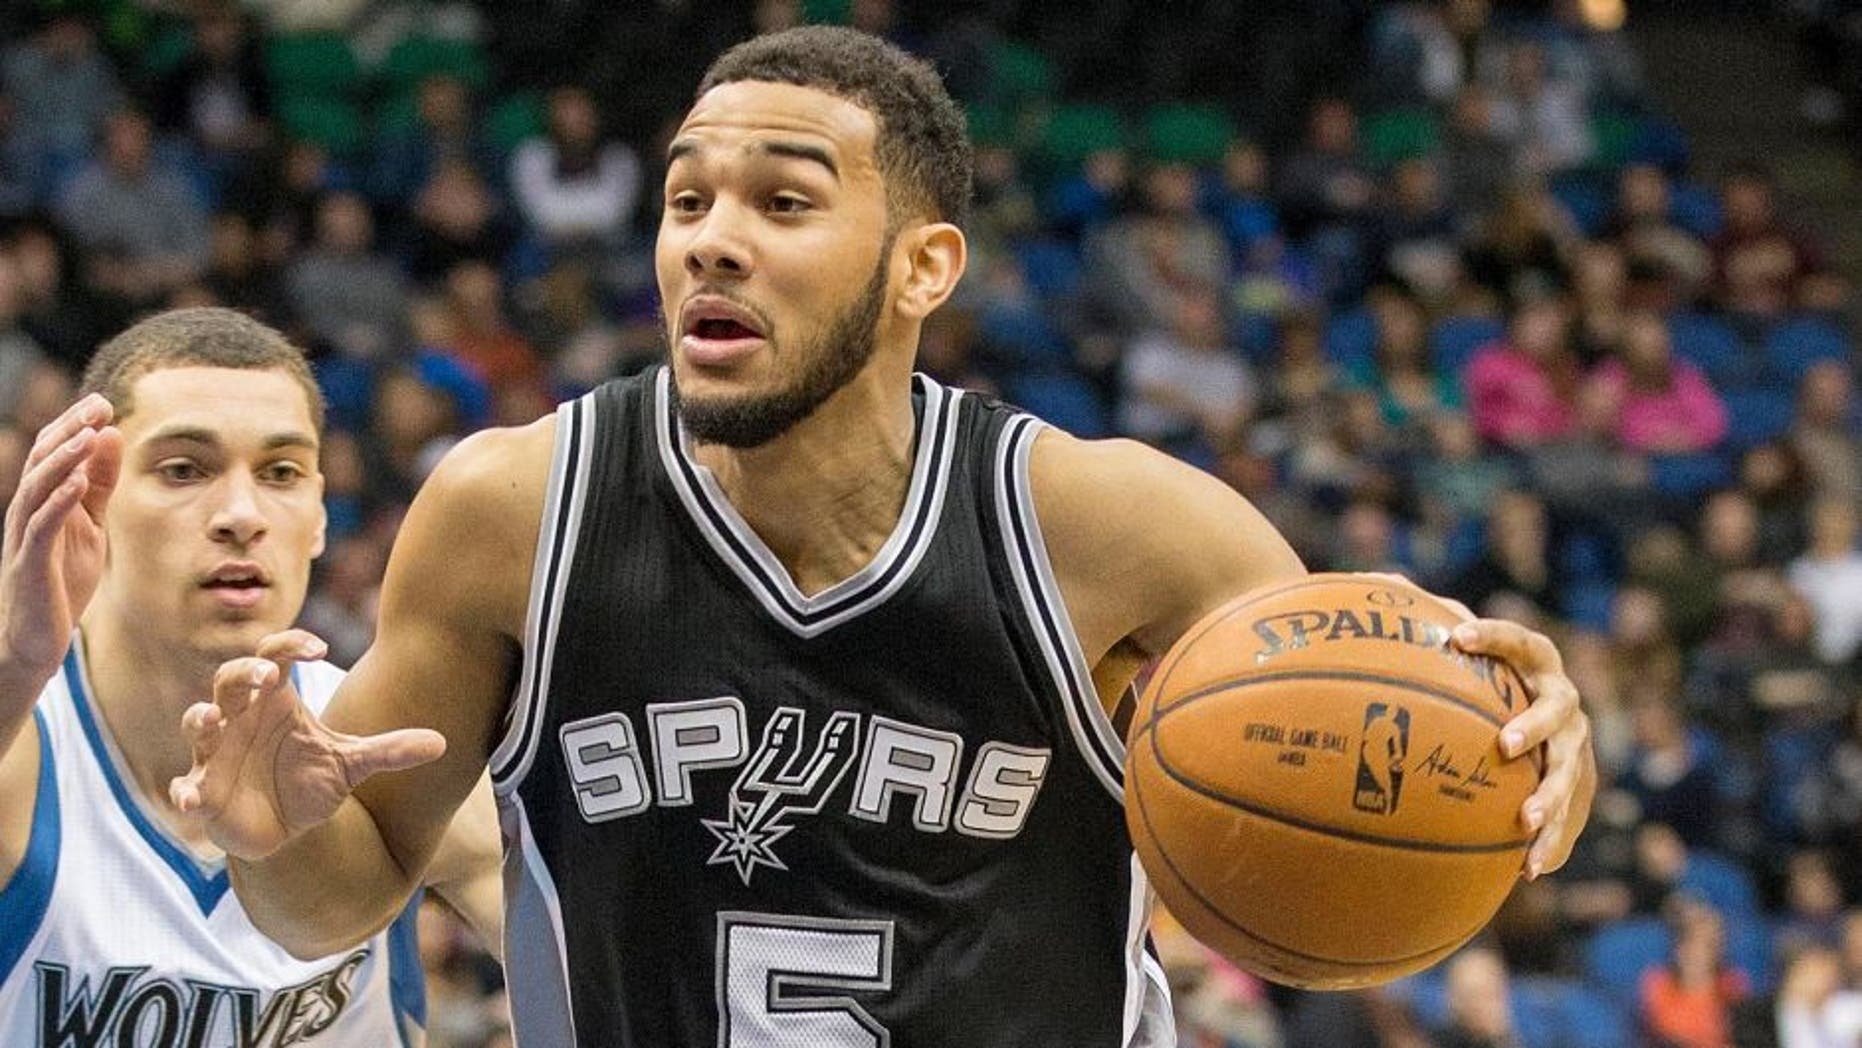 Jan 10, 2015; Minneapolis, MN, USA; San Antonio Spurs guard Cory Joseph (5) drives to the basket in the second half against the Minnesota Timberwolves at Target Center. The Spurs won 108-93. Mandatory Credit: Jesse Johnson-USA TODAY Sports